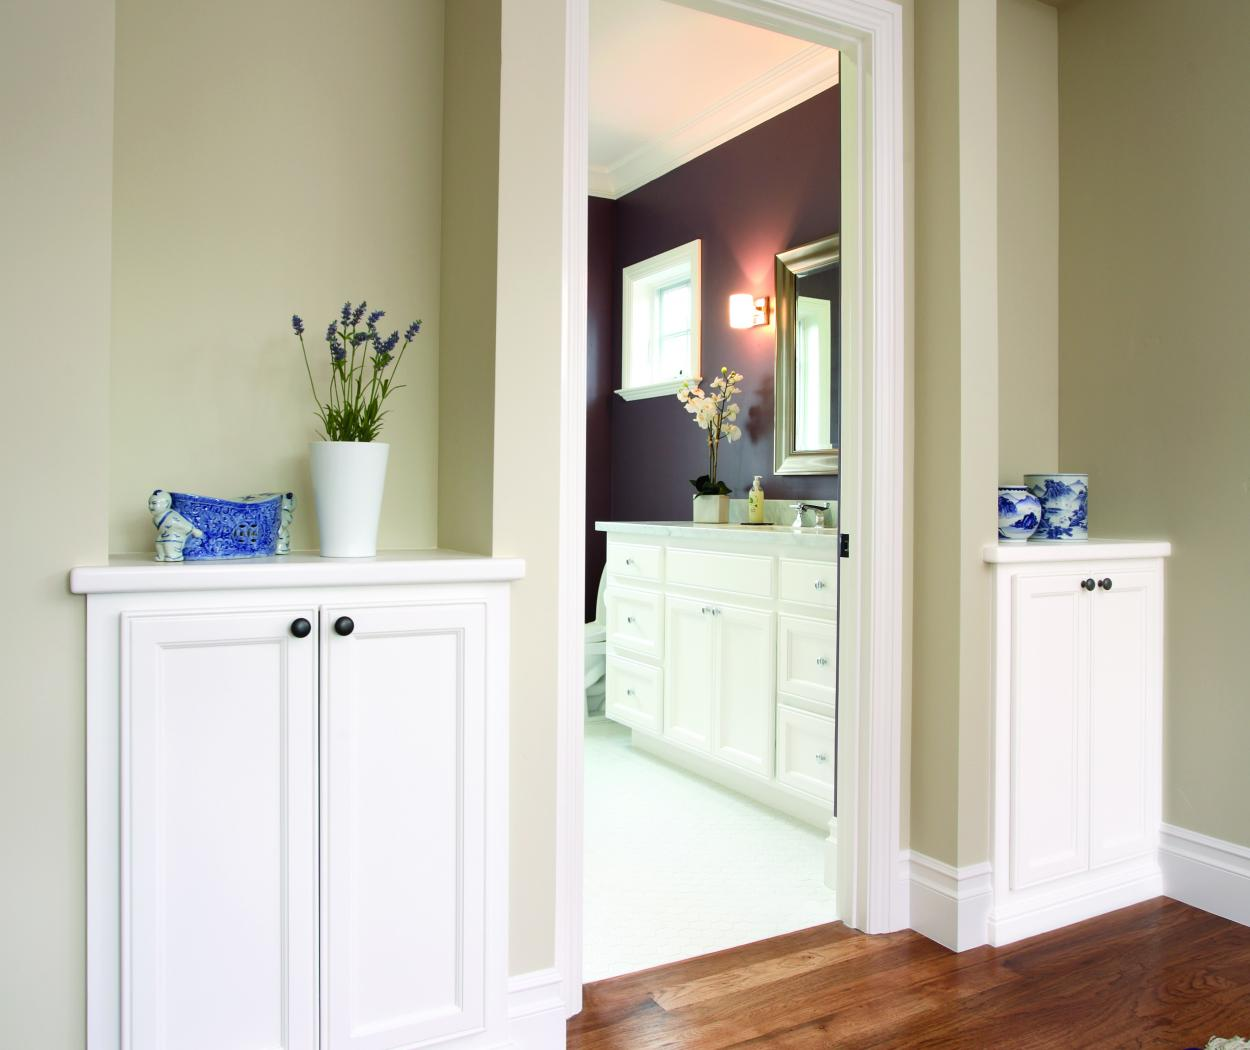 Two Transitional White Built-In Cabinets with White Counter Tops and Oil Rubbed Bronze Knobs